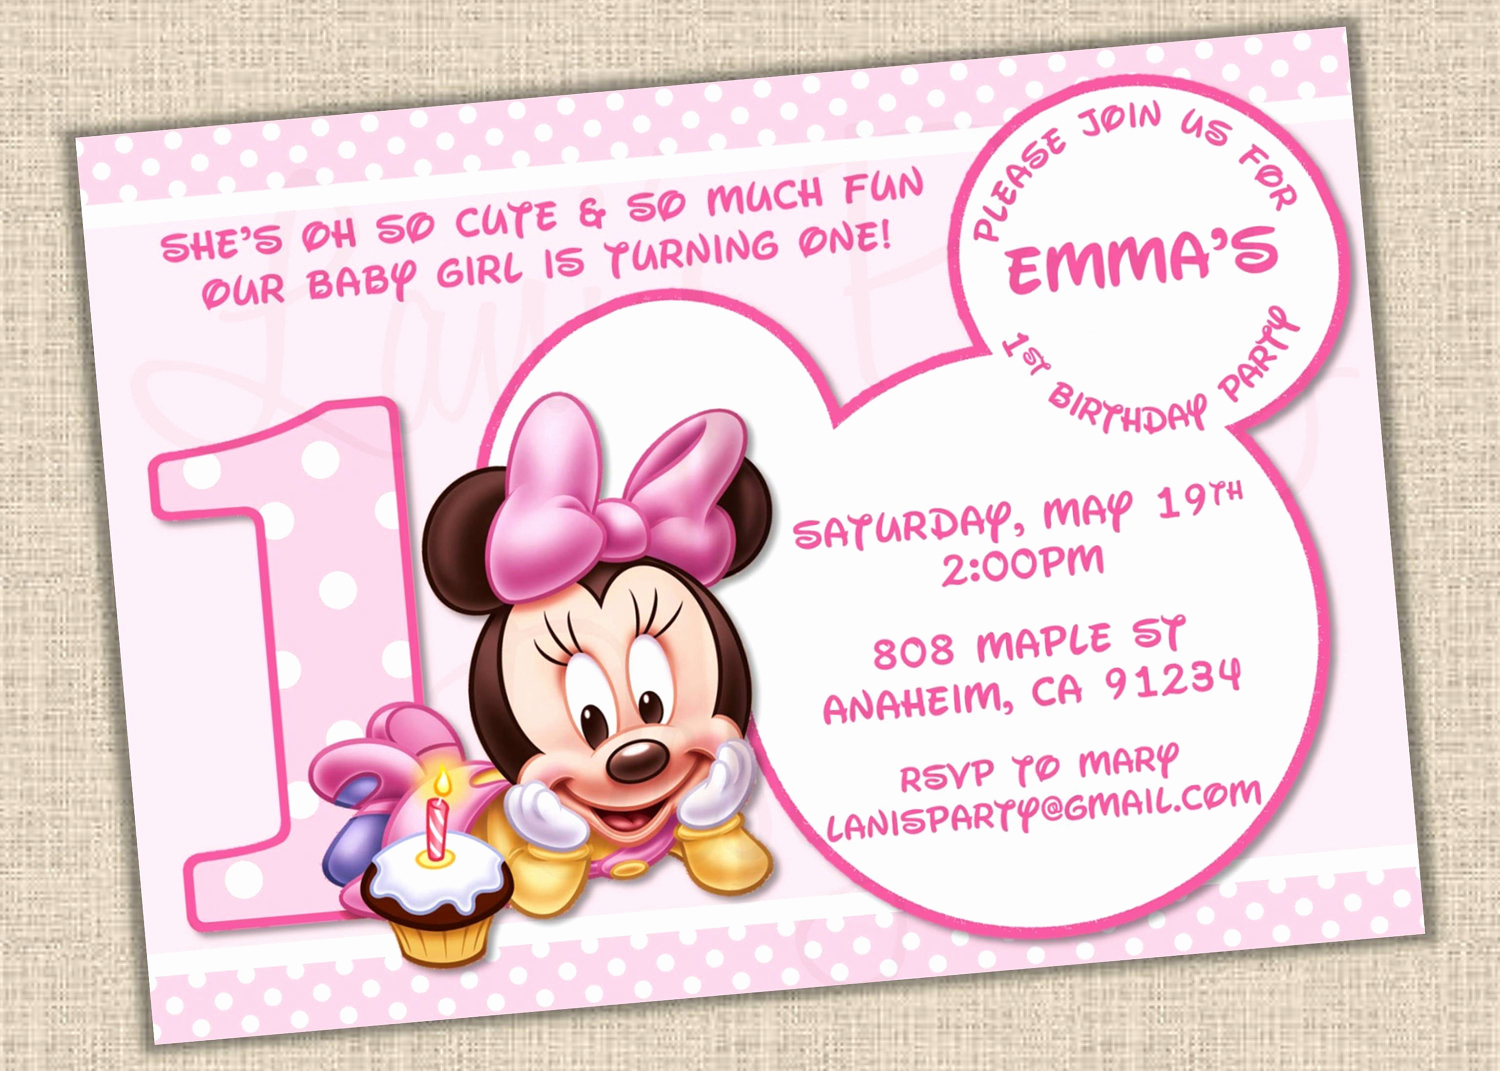 Minnie Mouse Invitation Template Online New Minnie Mouse Templates Invitations